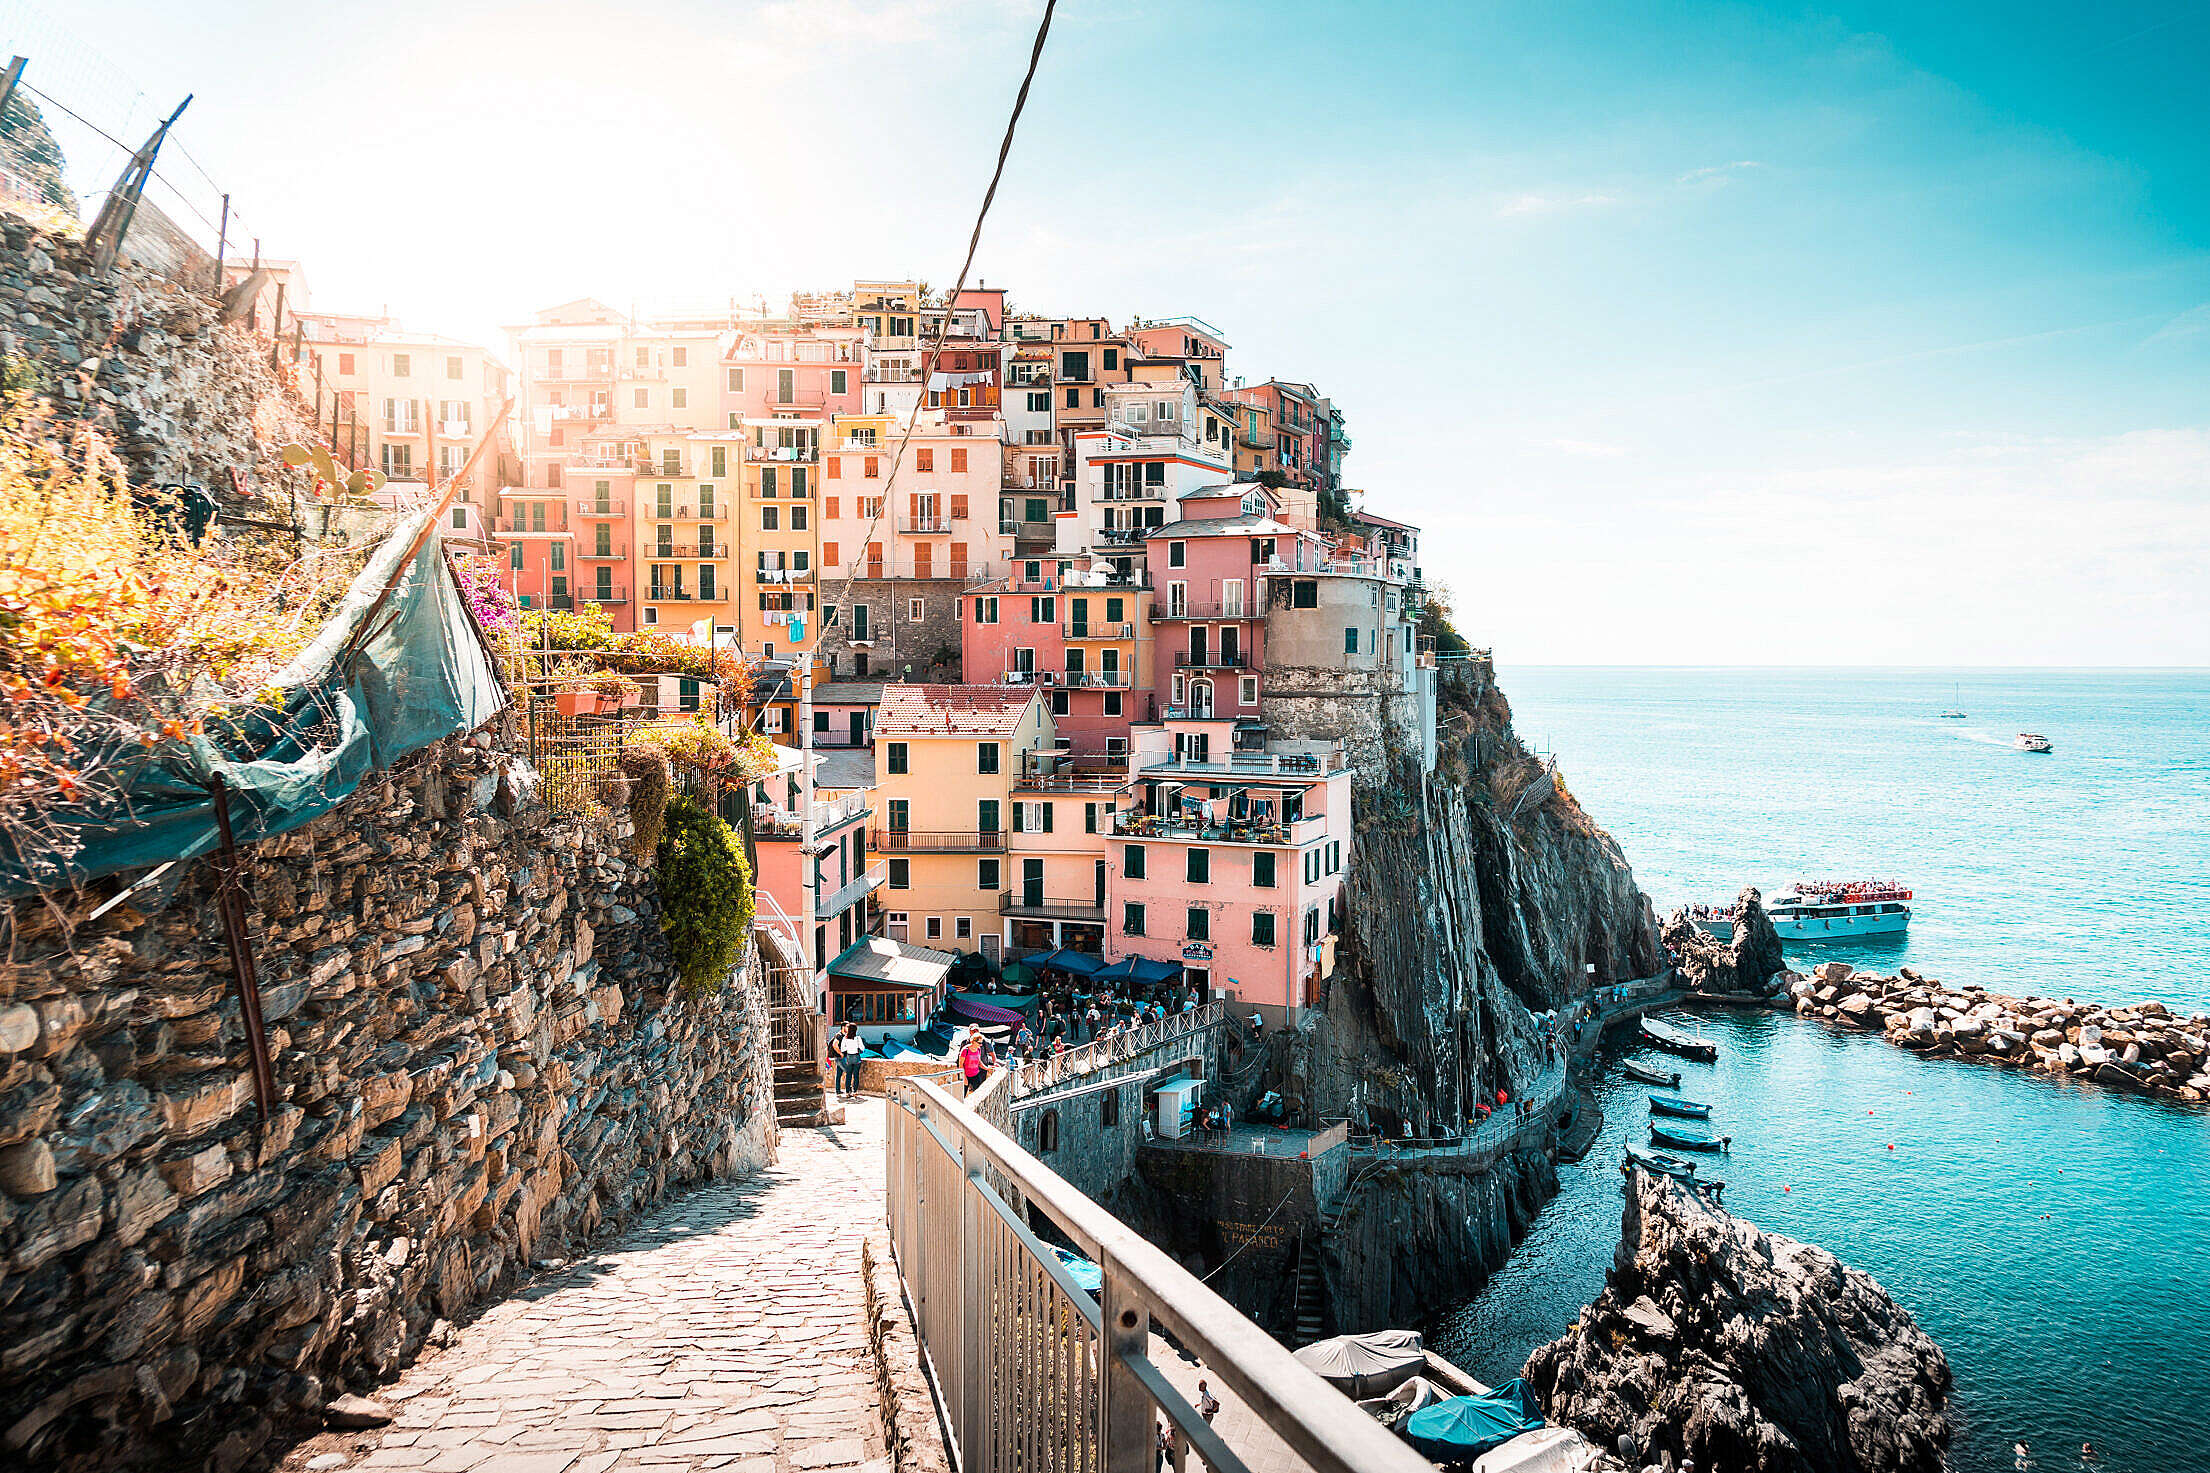 Seaside Houses on a Cliff at Cinque Terre Free Stock Photo